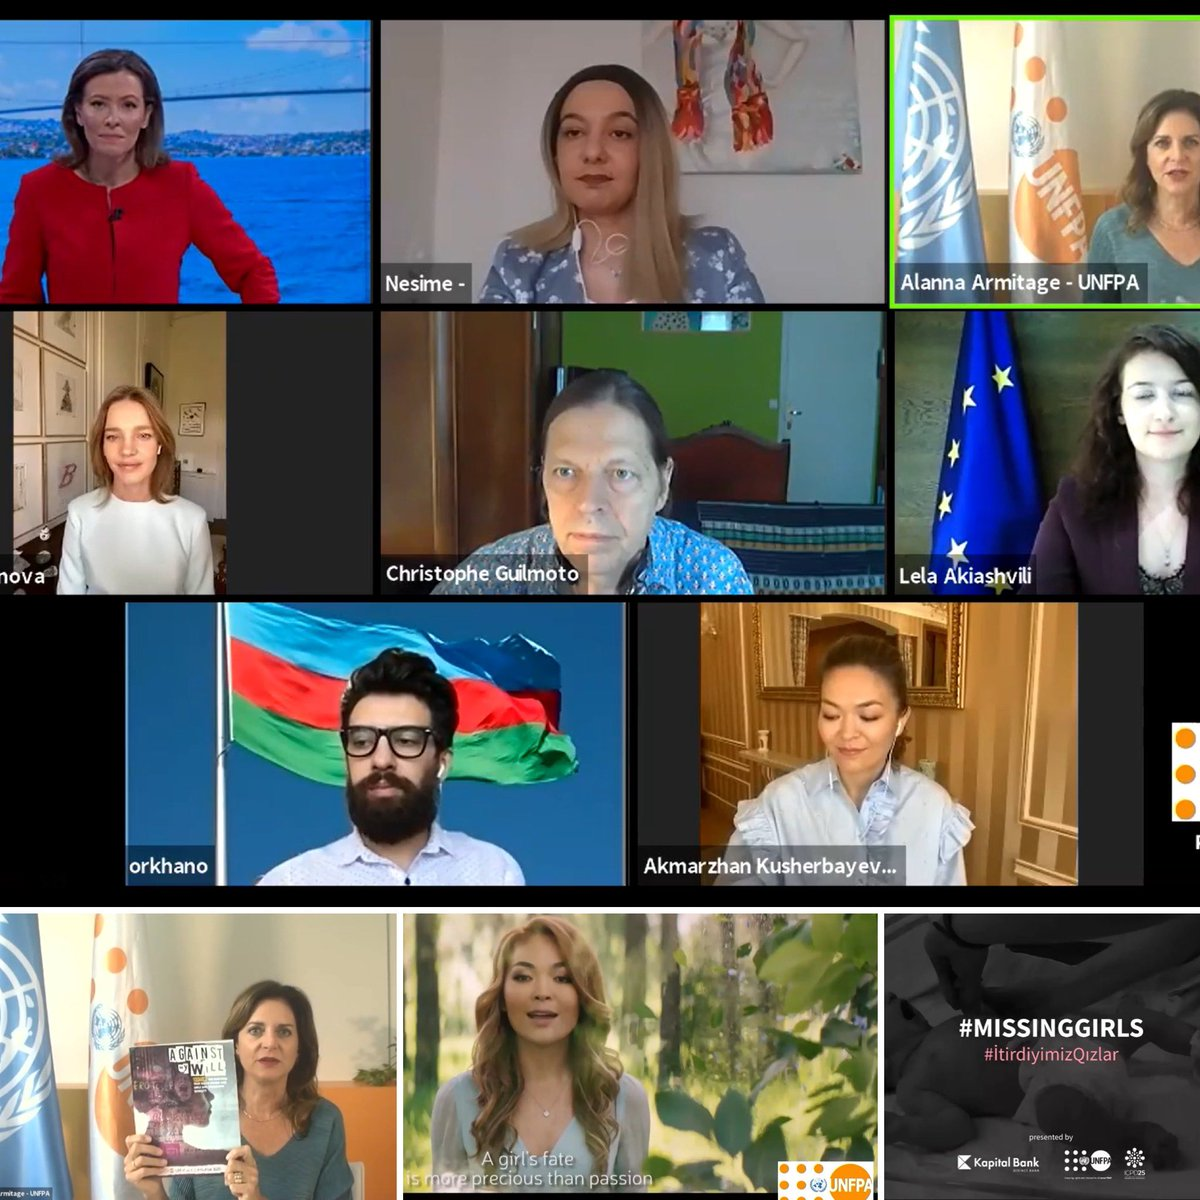 Big appreciation to our great speakers @NataSupernova @NSalioska @Lela_Akiashvili @KrstoCZG @orkhano & Singer KALIYA & amazing @MariaRamosUK of @TRTWorld for the very inspiring #SWOP2020 launch today!   Your work everyday proves that #SheCounts!  Watch: https://t.co/2eo8HZaFRv https://t.co/00l9a9Udhe